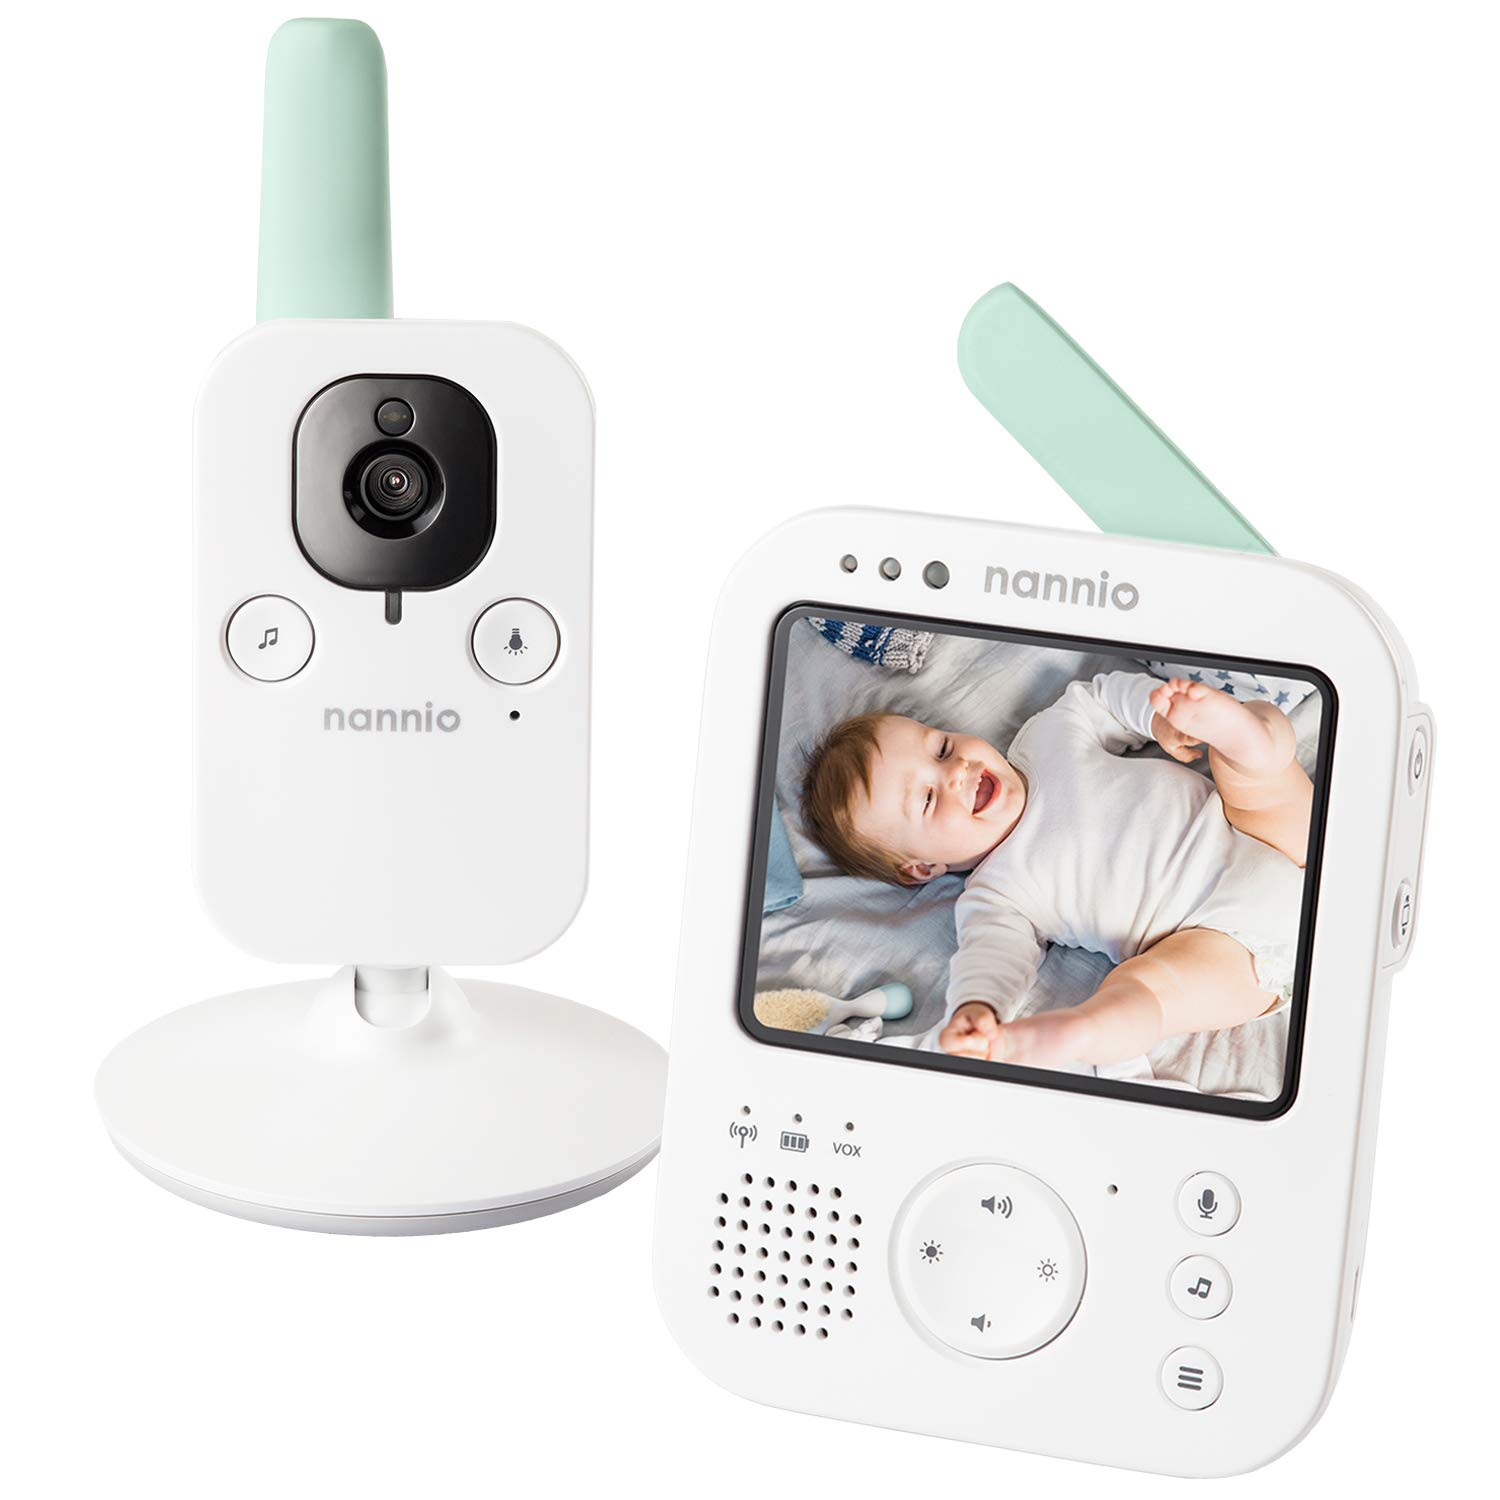 nannio Hero3 Video Baby Monitor with Vibration Alerts, Sound Activated, Infrared Night Vision Camera, 5 Lullabies, Temperature Sensor, Two-Way Talk - 985ft Range